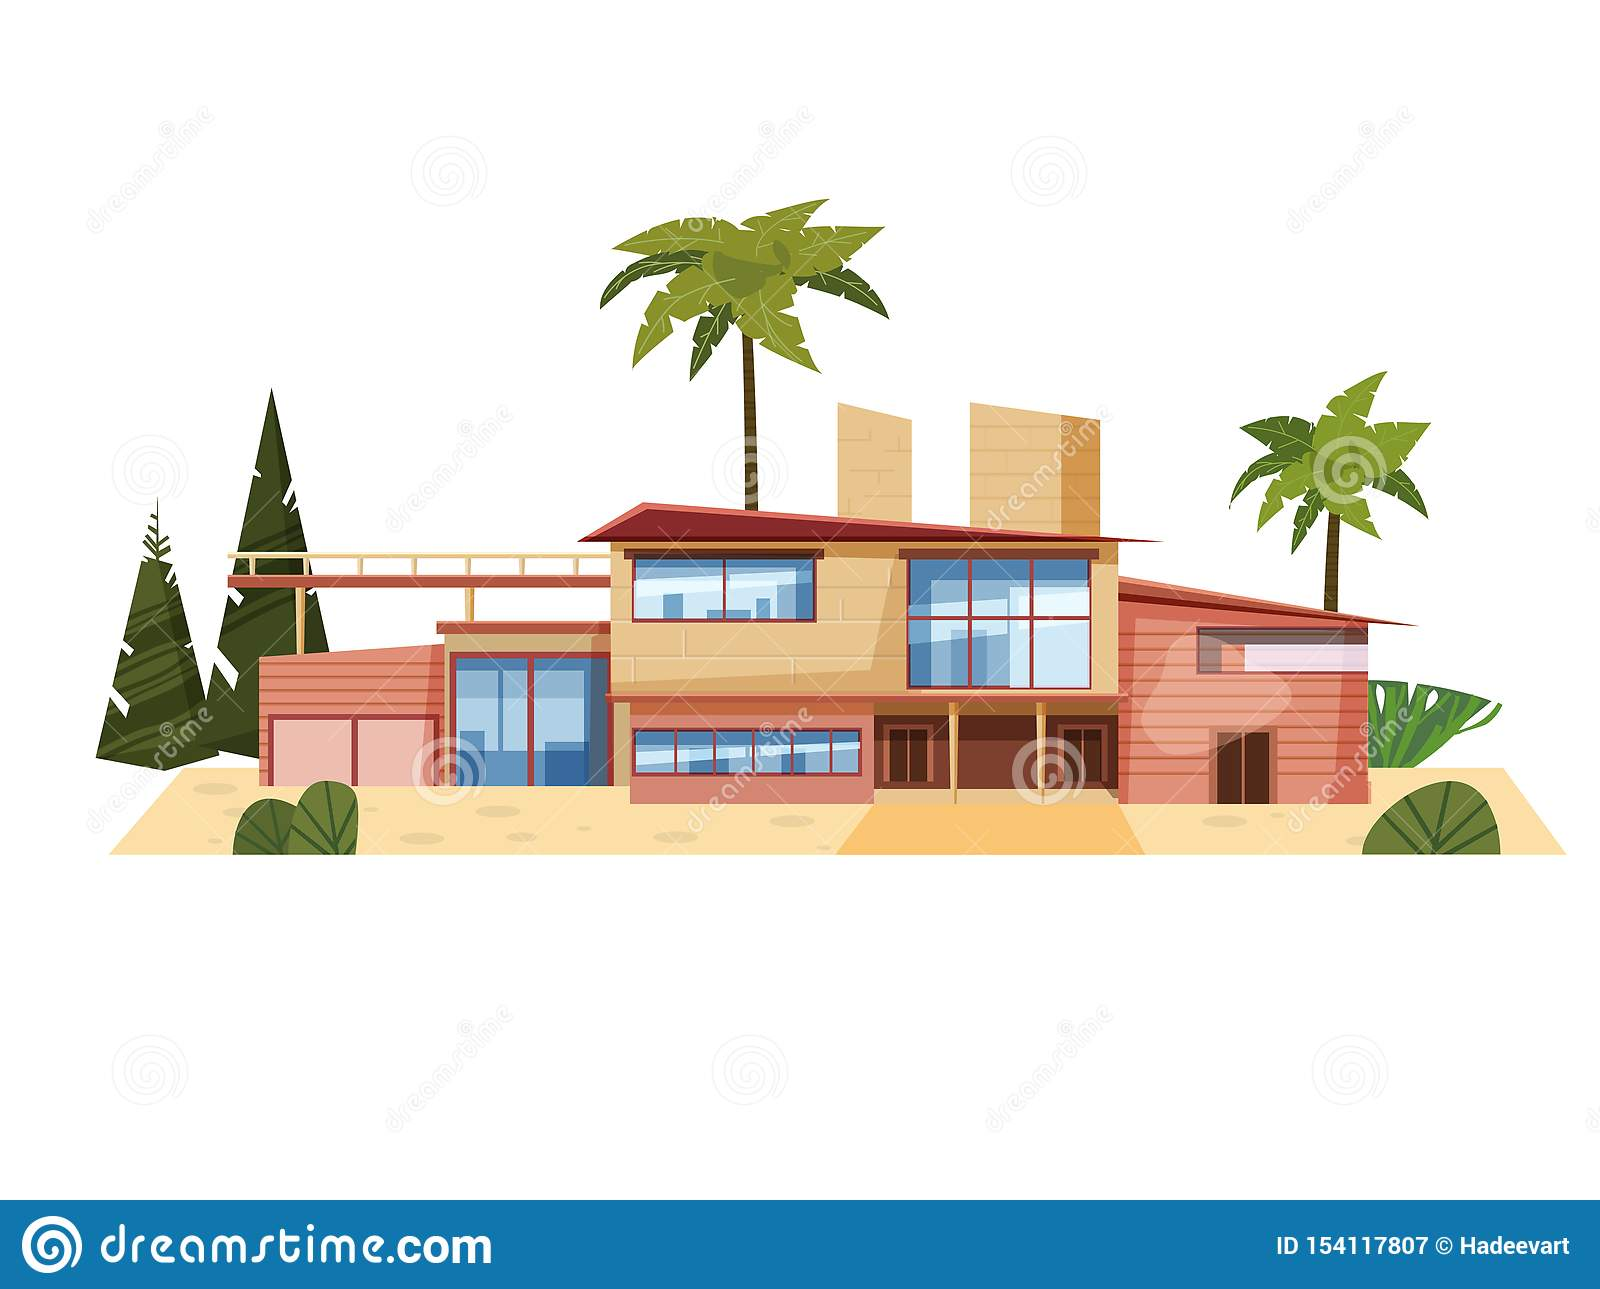 Modern Villa On Residence Expensive Mansion Palm Trees Luxury Cottage House Exterior Cartoon Vector Illustration Stock Vector Illustration Of Design Property 154117807